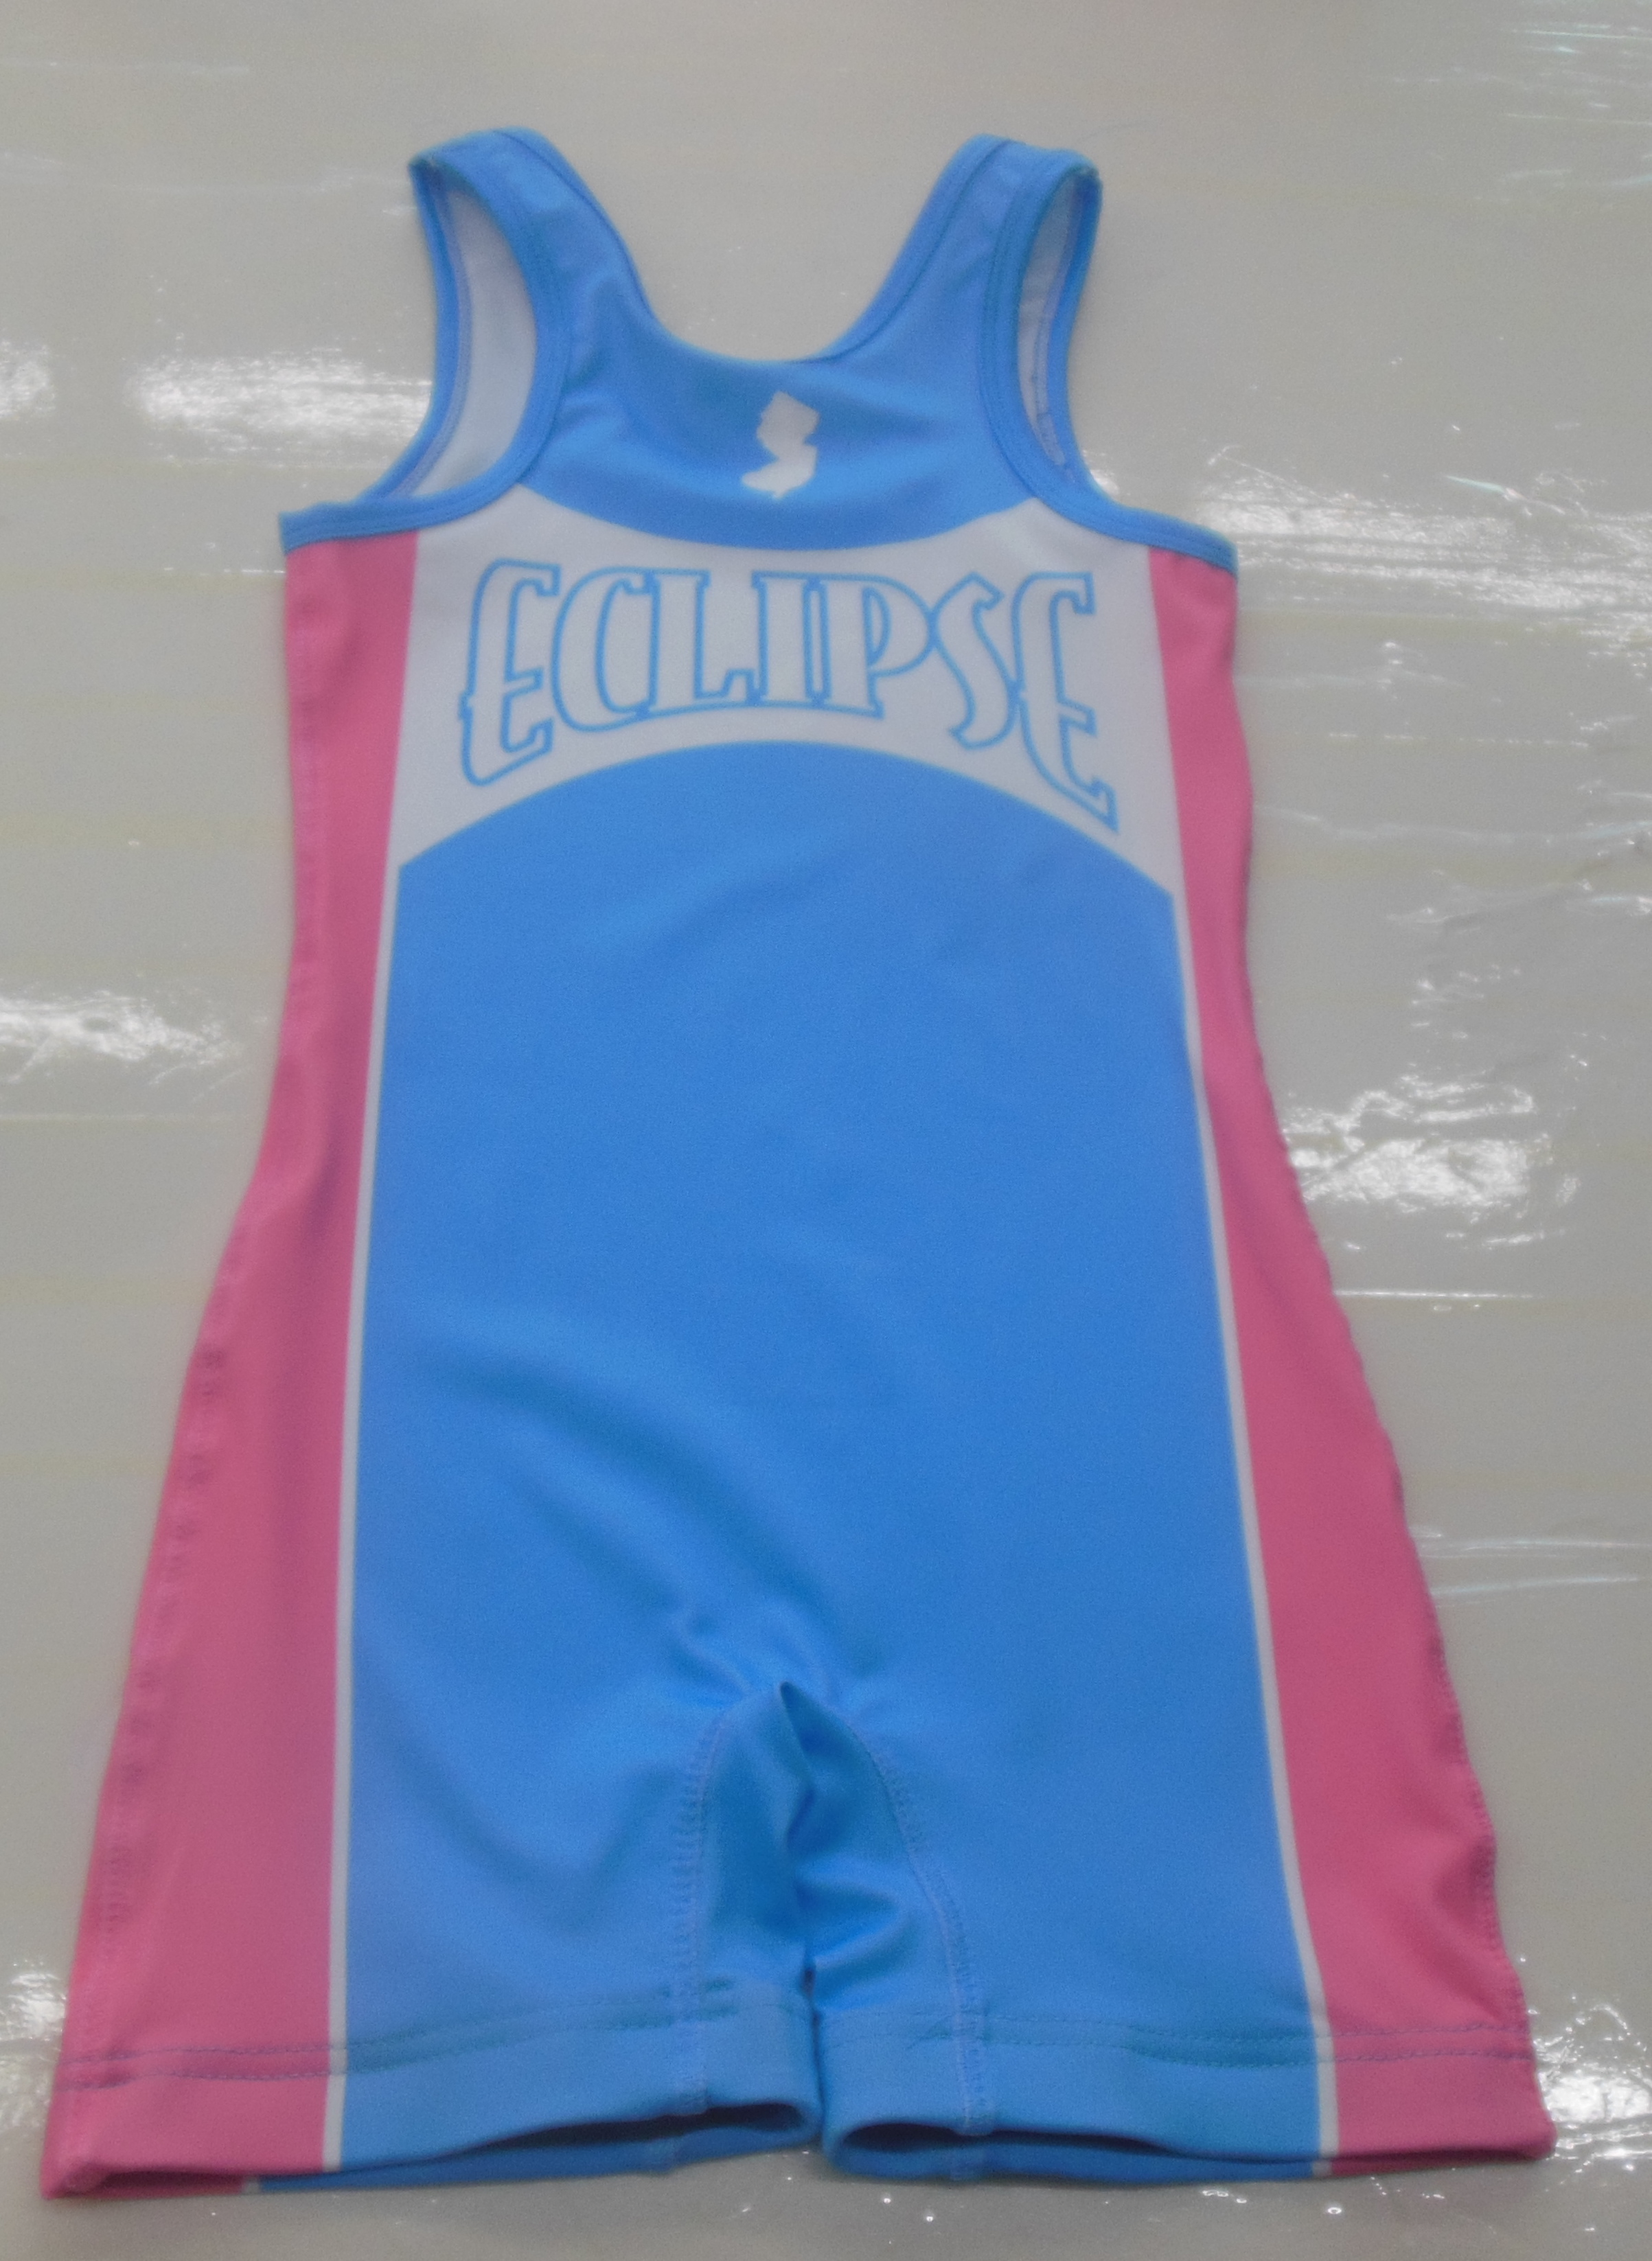 THUNDER Sky Blue Blue Yellow and White Baseball Uniforms, Kids Swimming Suits